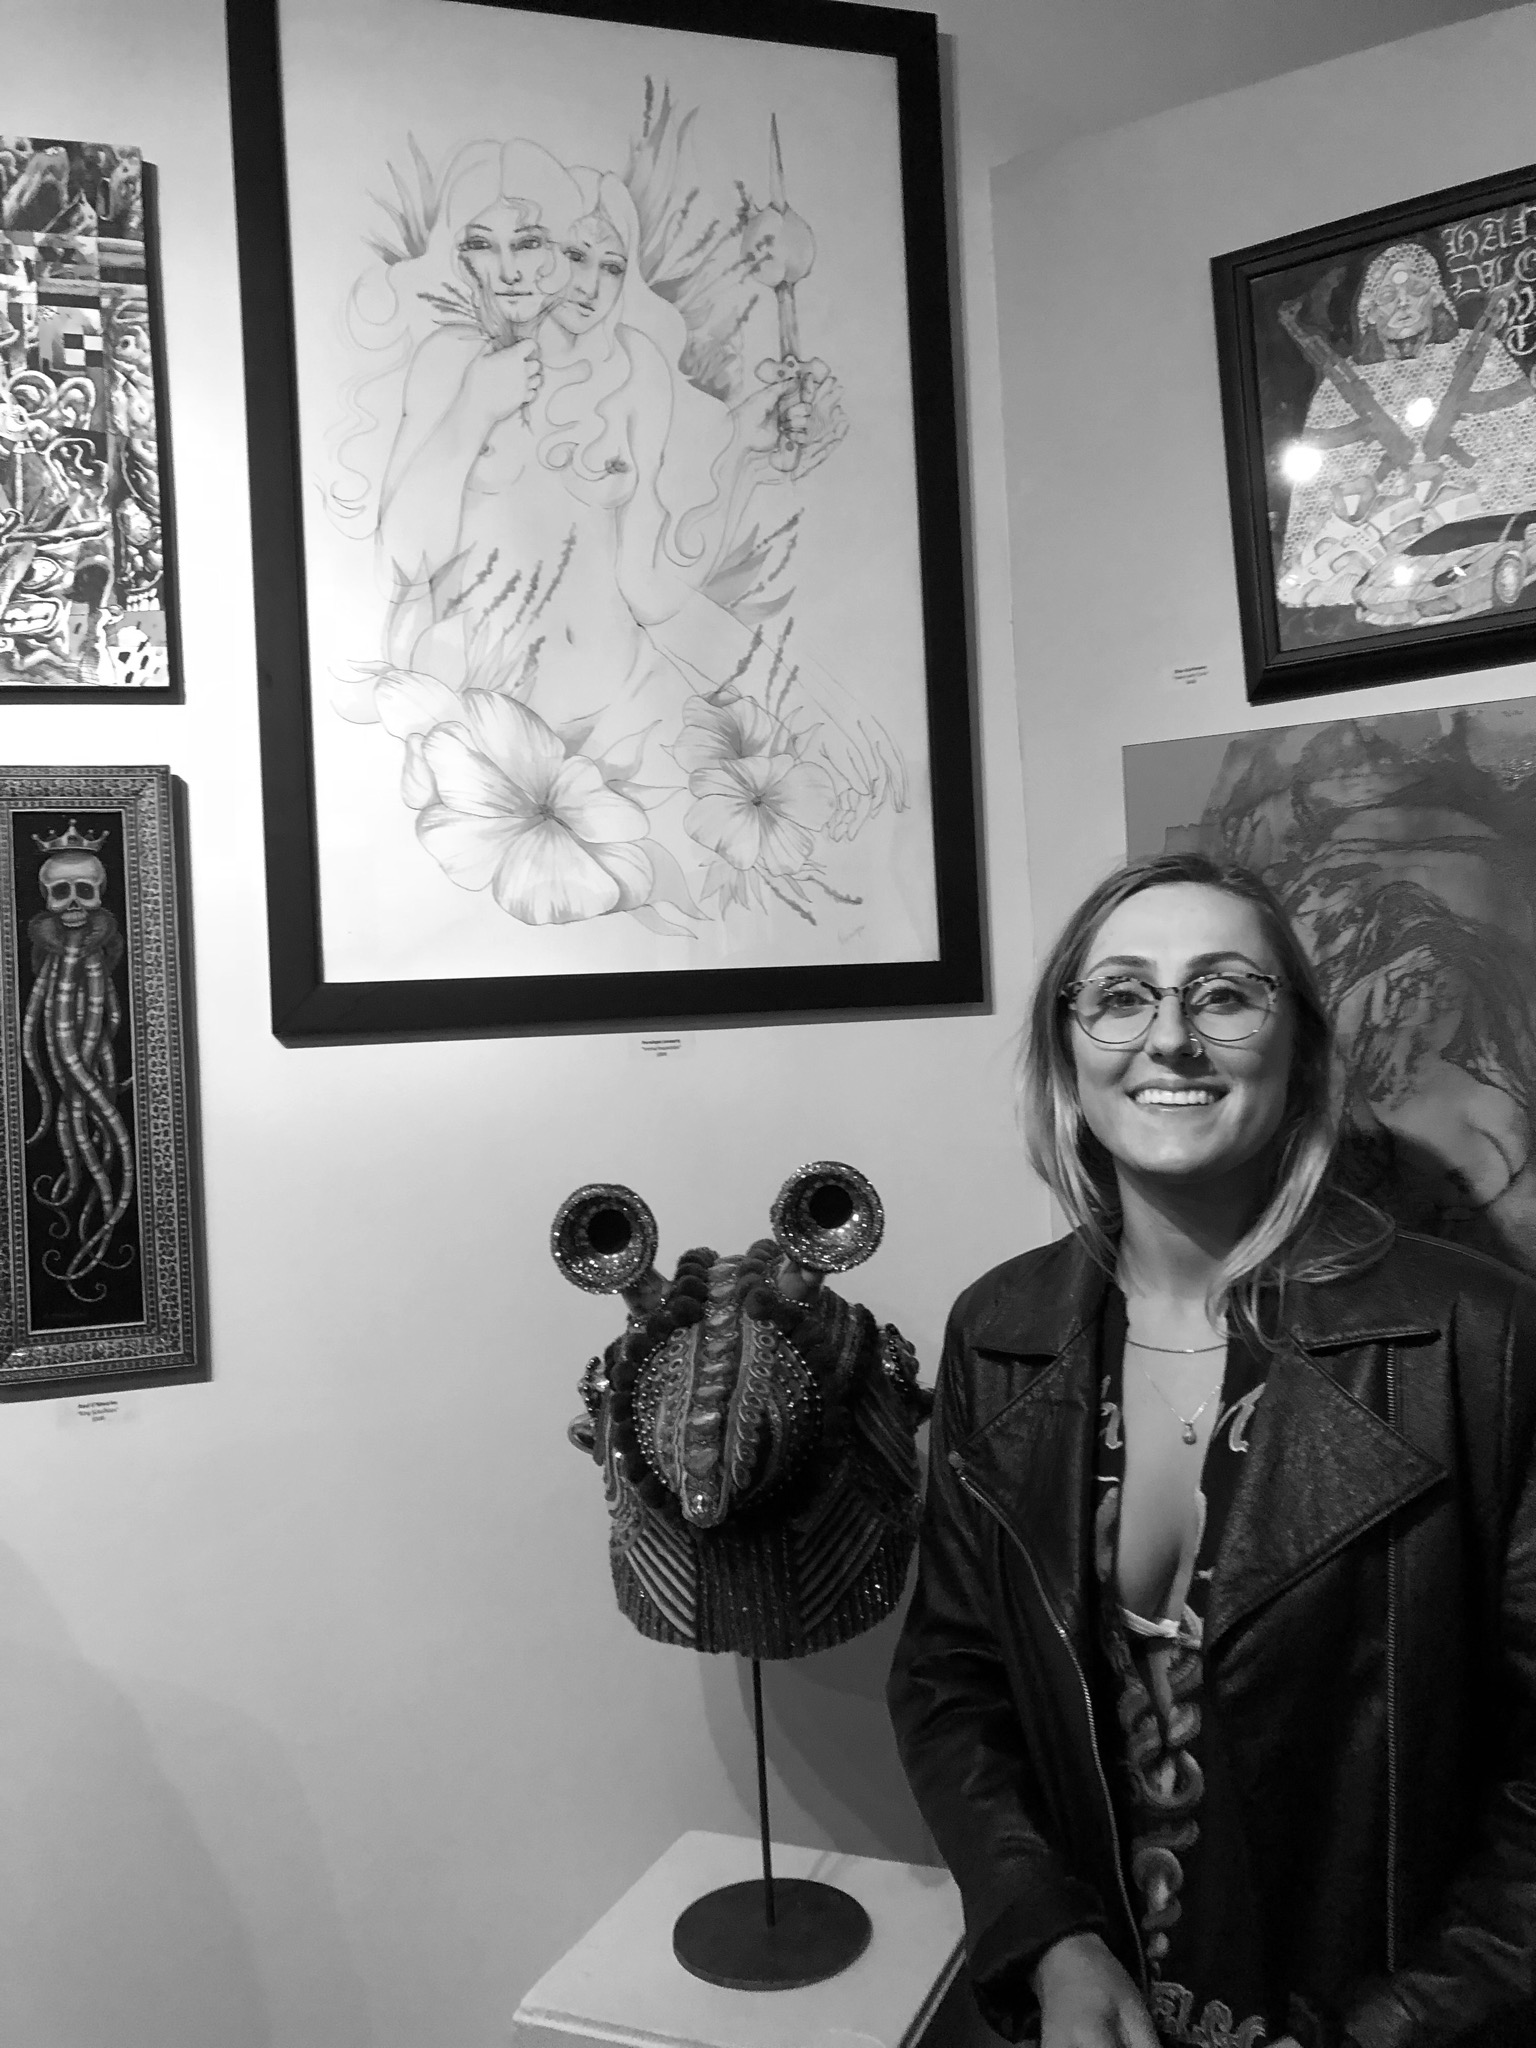 My drawing and I at 1810 Gallery, Sacramento, April 2018